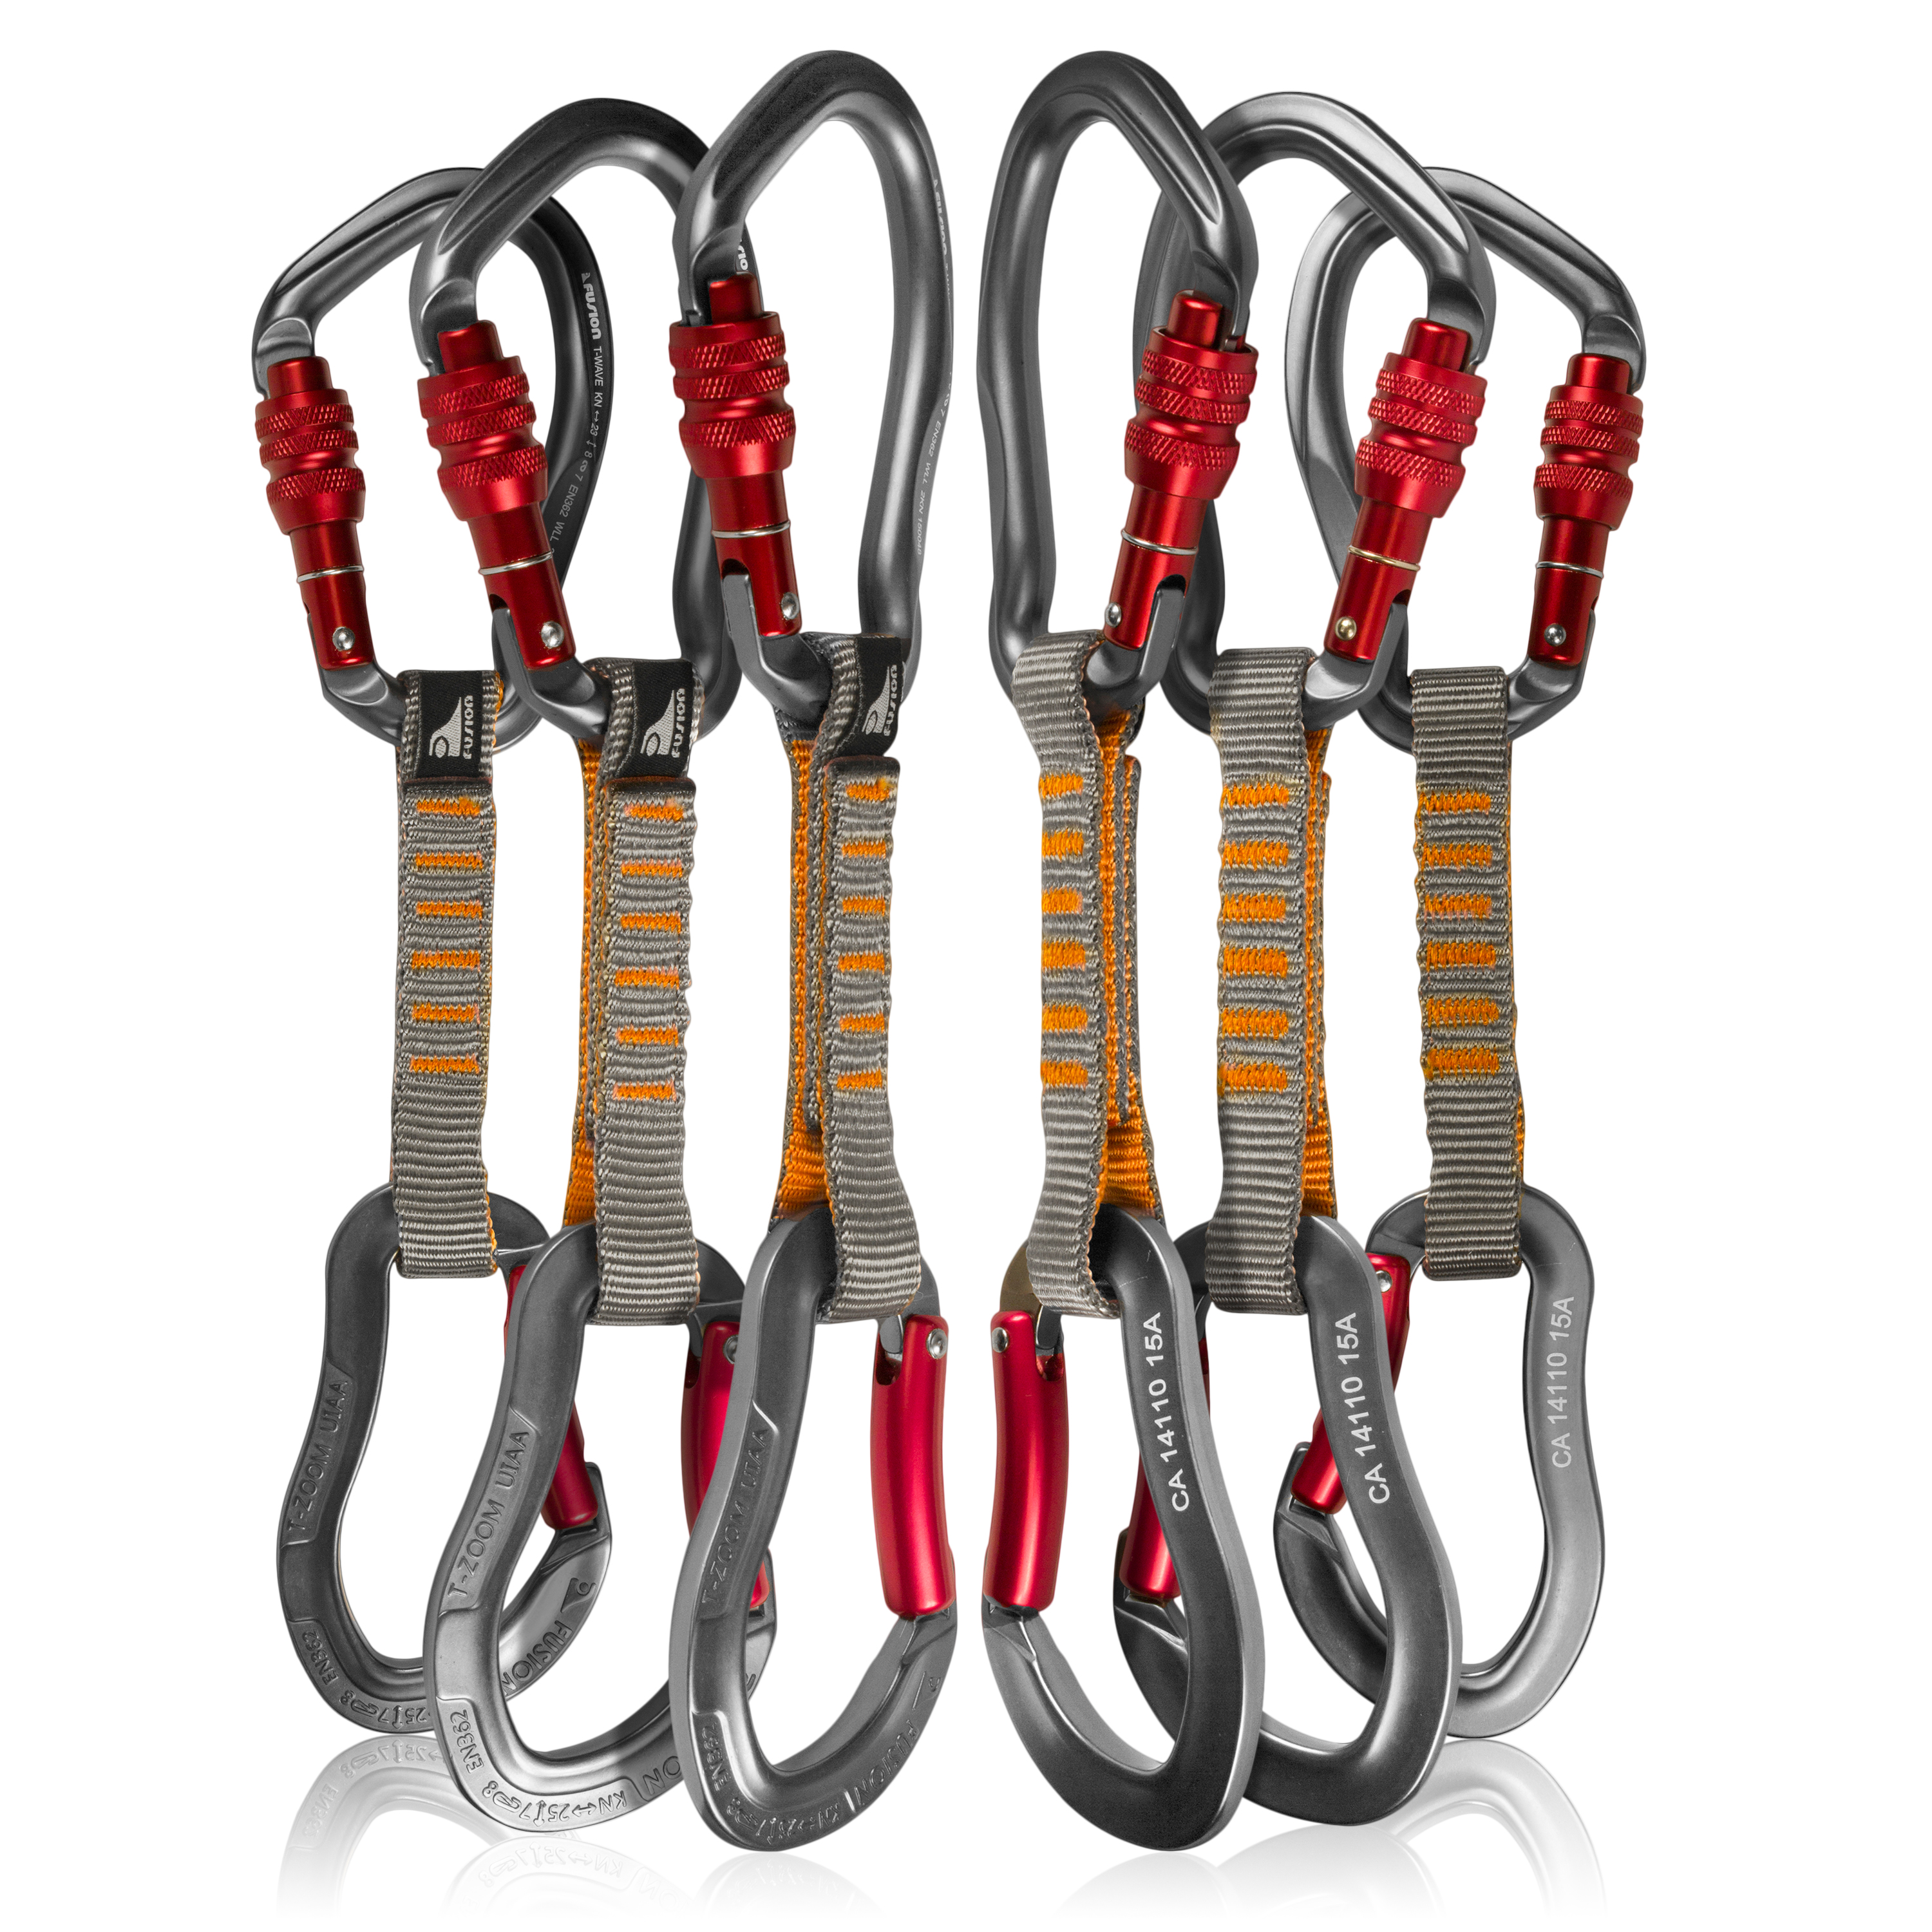 Fusion Climb 6-Pack 11cm Quickdraw Set with Techno Wave Burgundy Screw Gate Carabiner/Techno Zoom Burgundy Bent Gate Carabiner